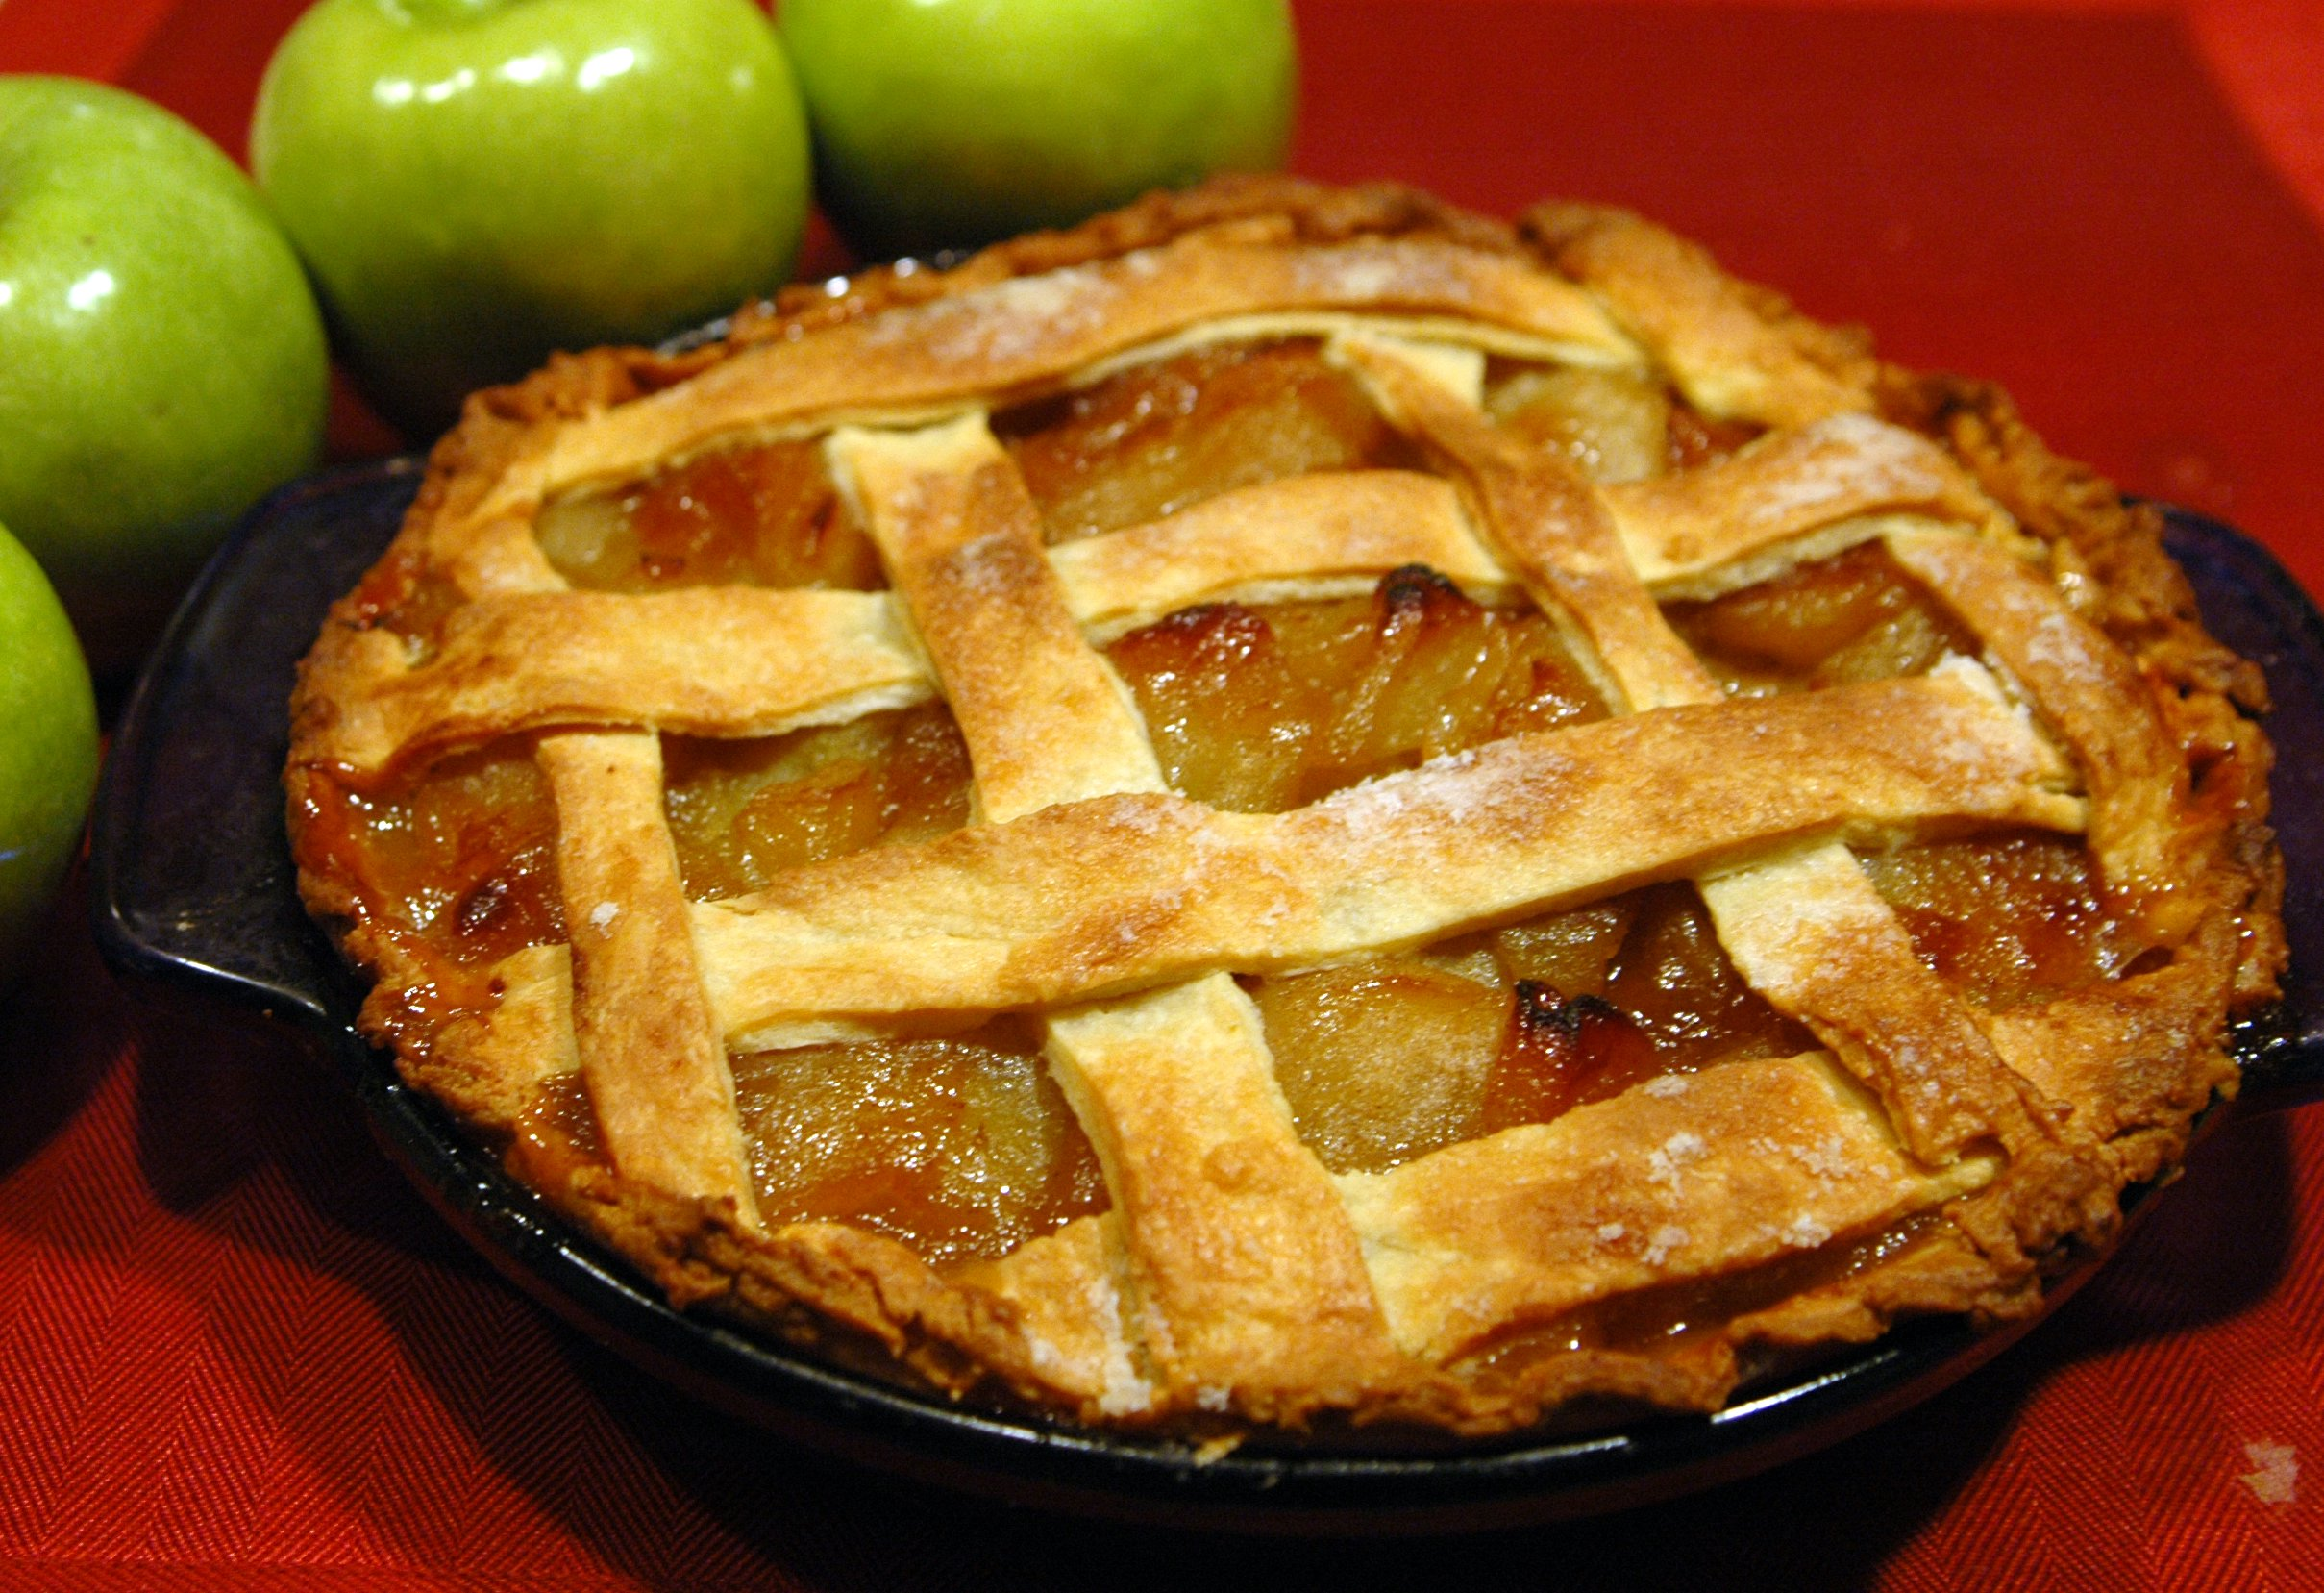 [Image: Apple_pie.jpg]